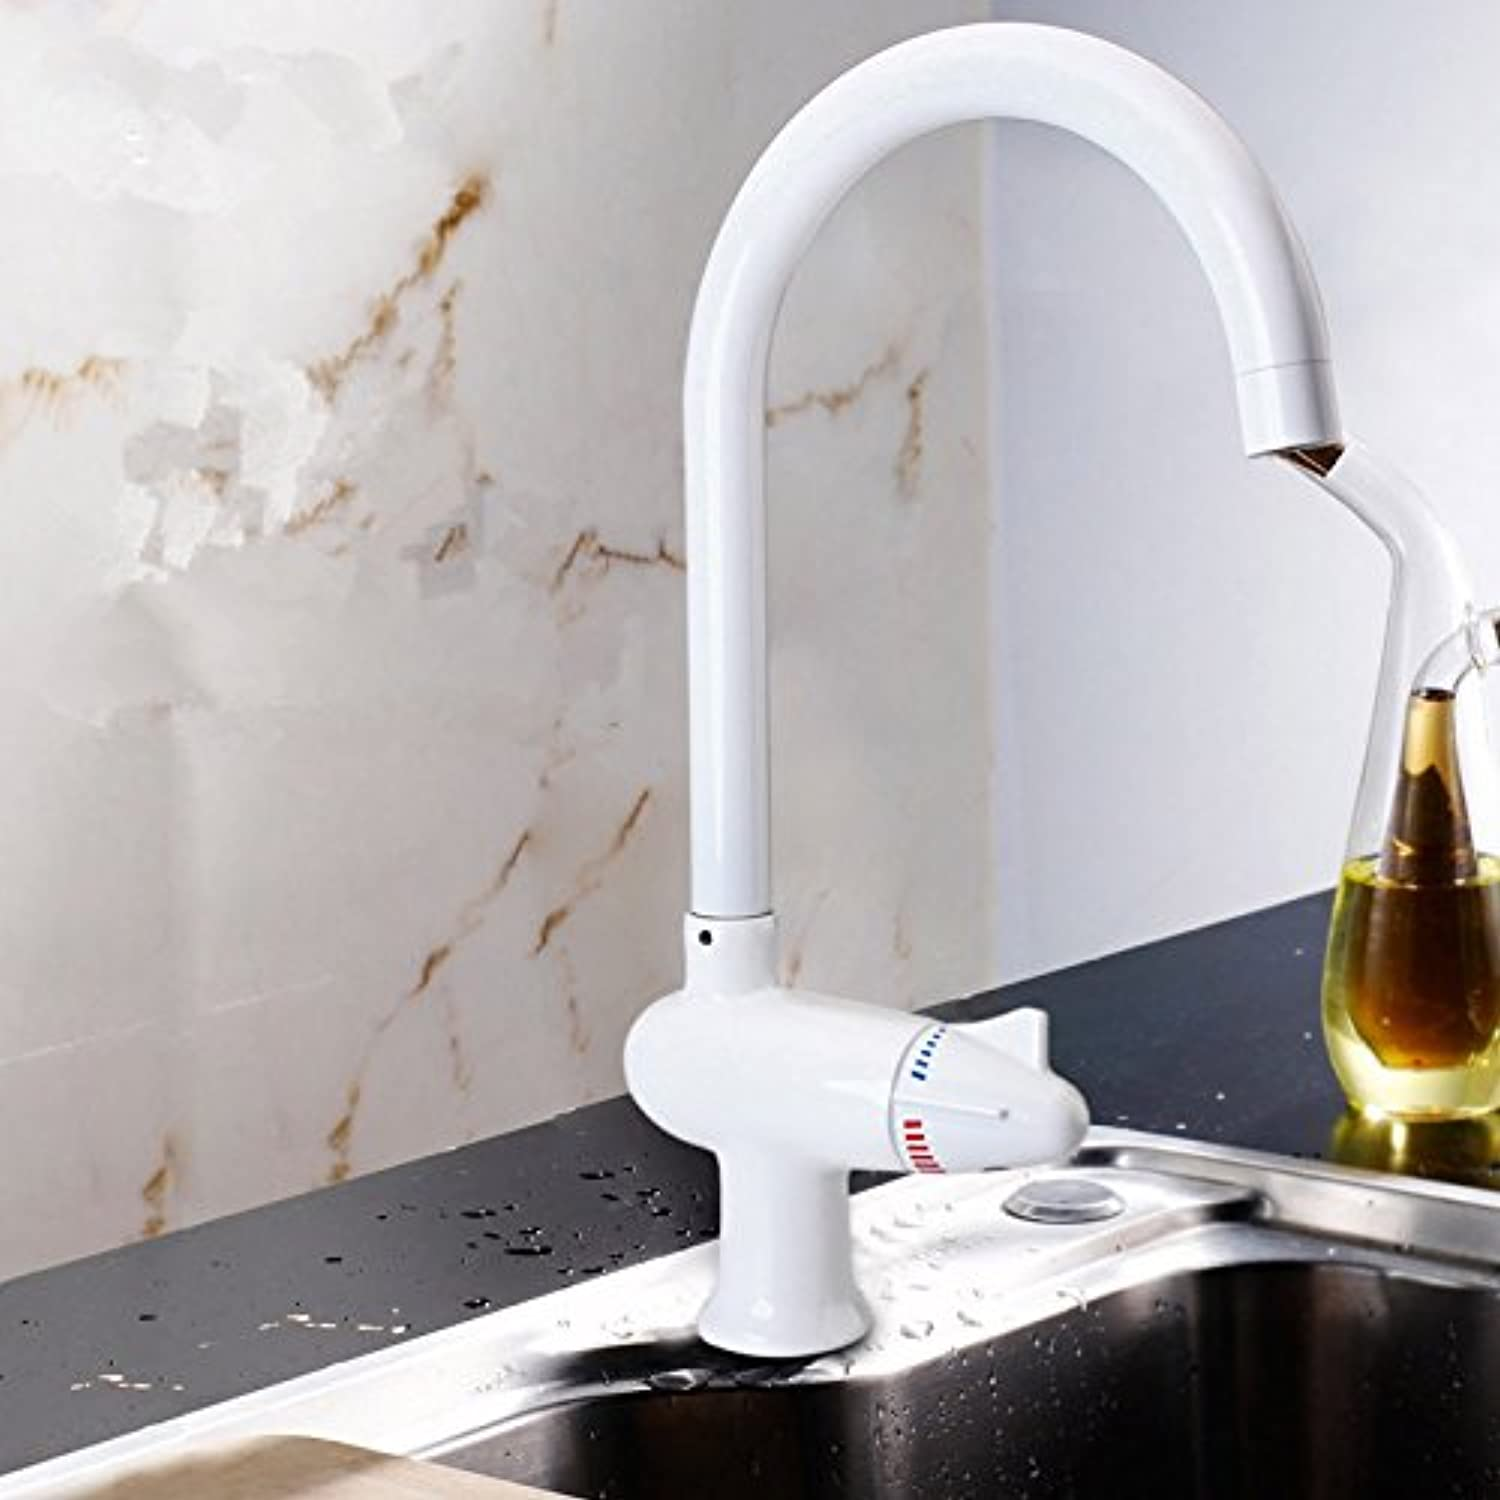 Maifeini Single Hole Hot And Cold Kitchen Faucet, Dish Washing Basin Faucet, Fine Copper Thickening Sink Faucet,L3016 White Paint